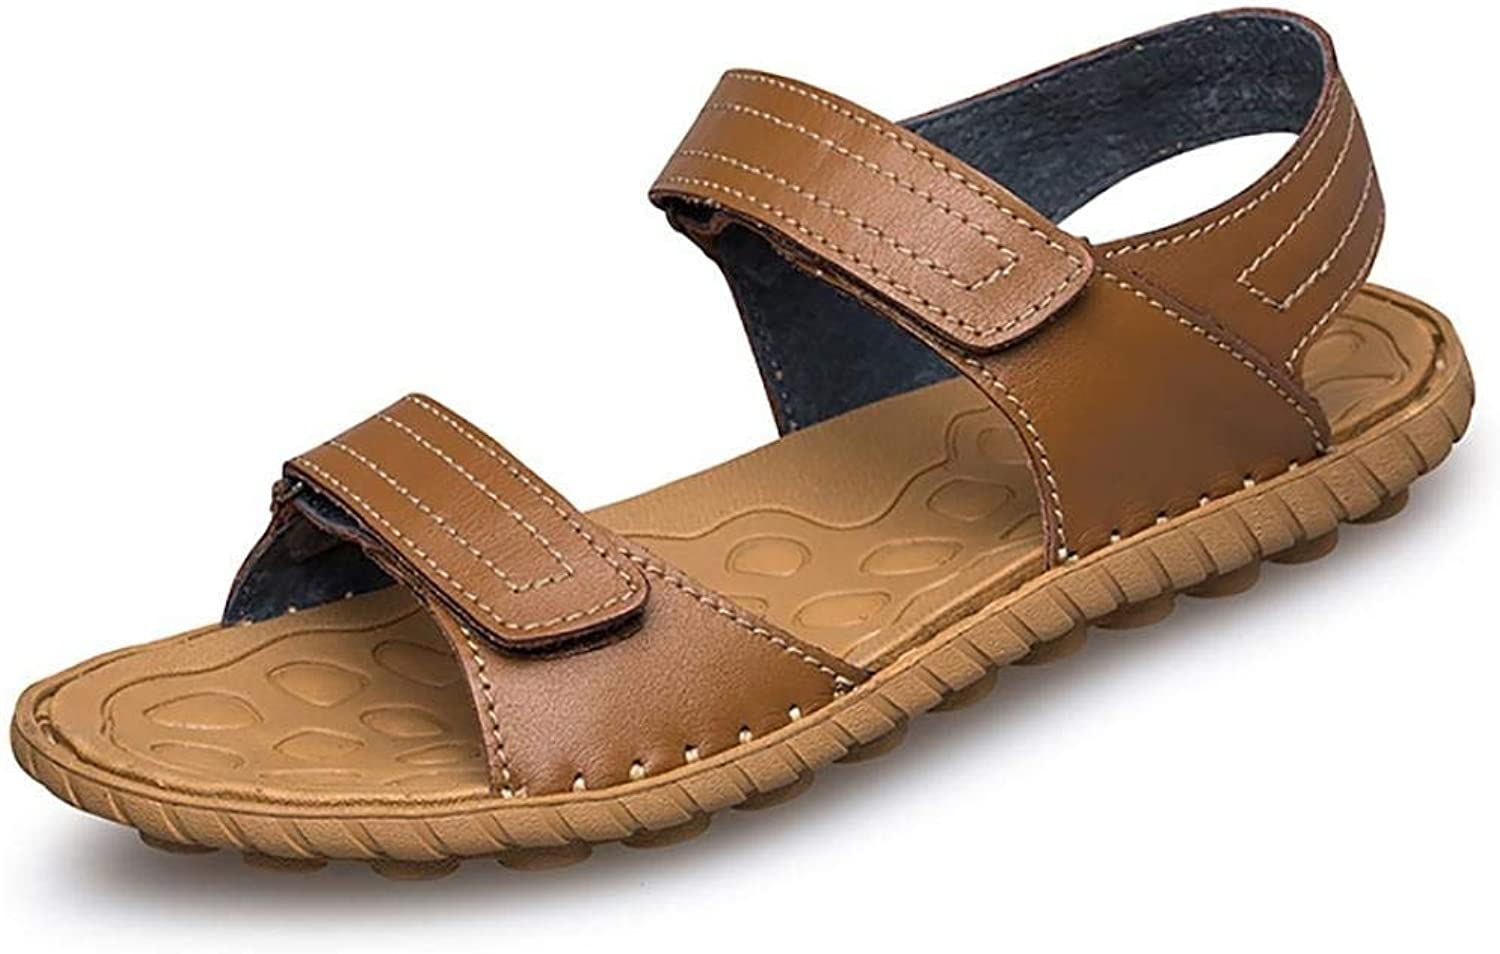 Oudan Men's Summer Flip Flops Casual Leather Sandals (color   Brown, Size   42)